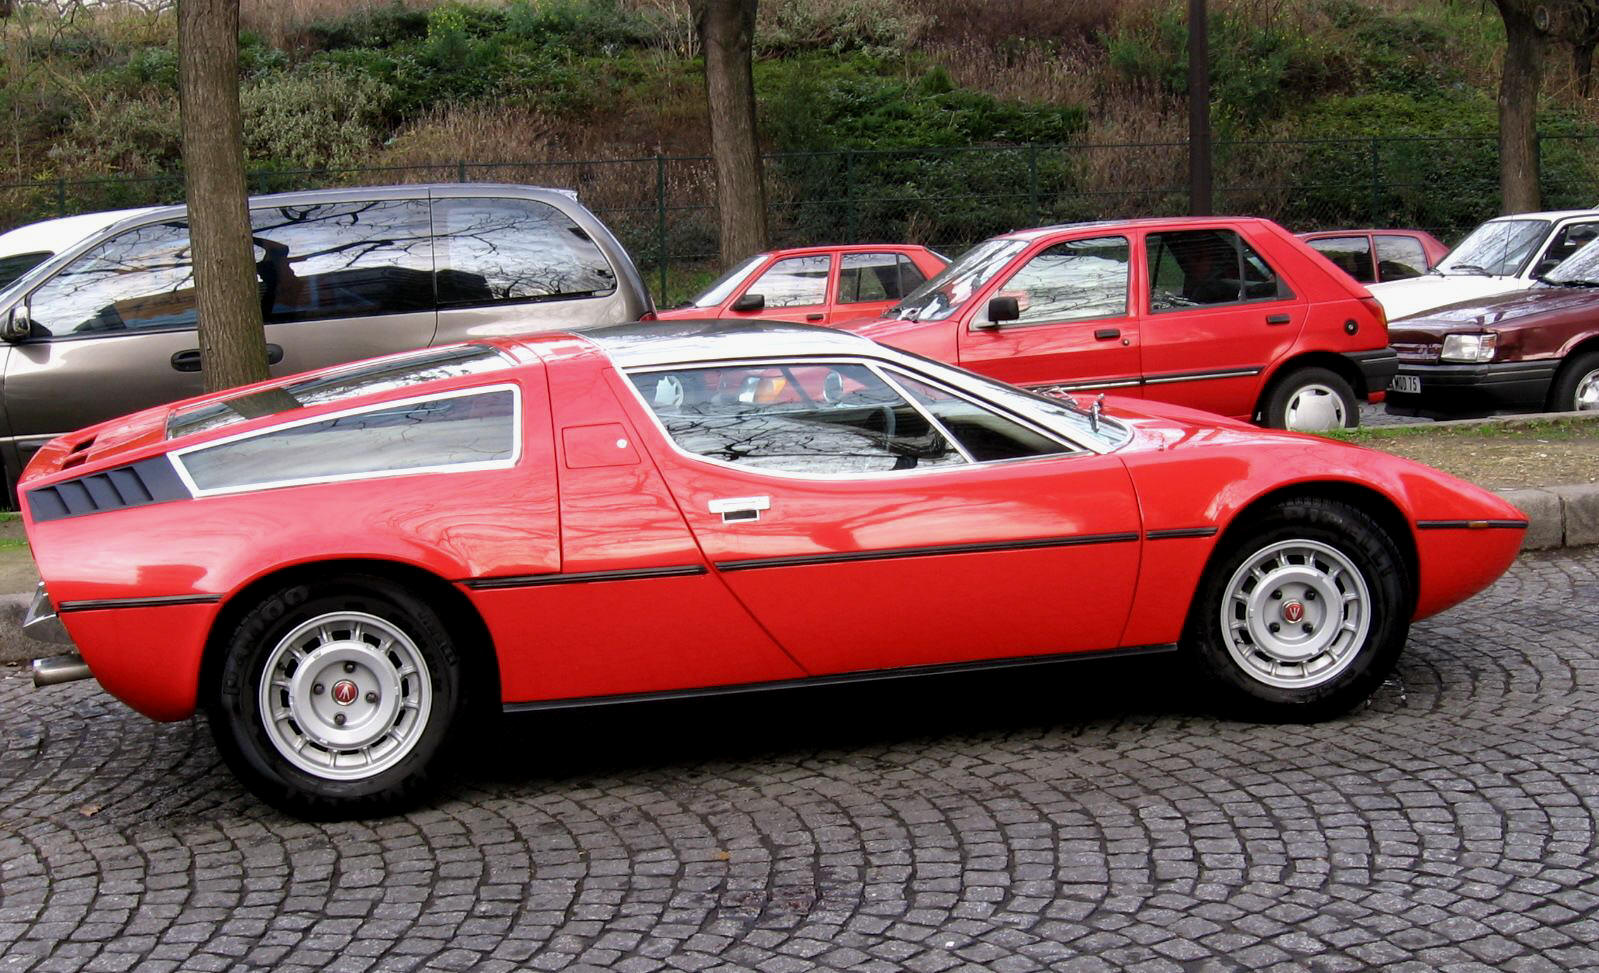 One of the 500 Maserati Bora